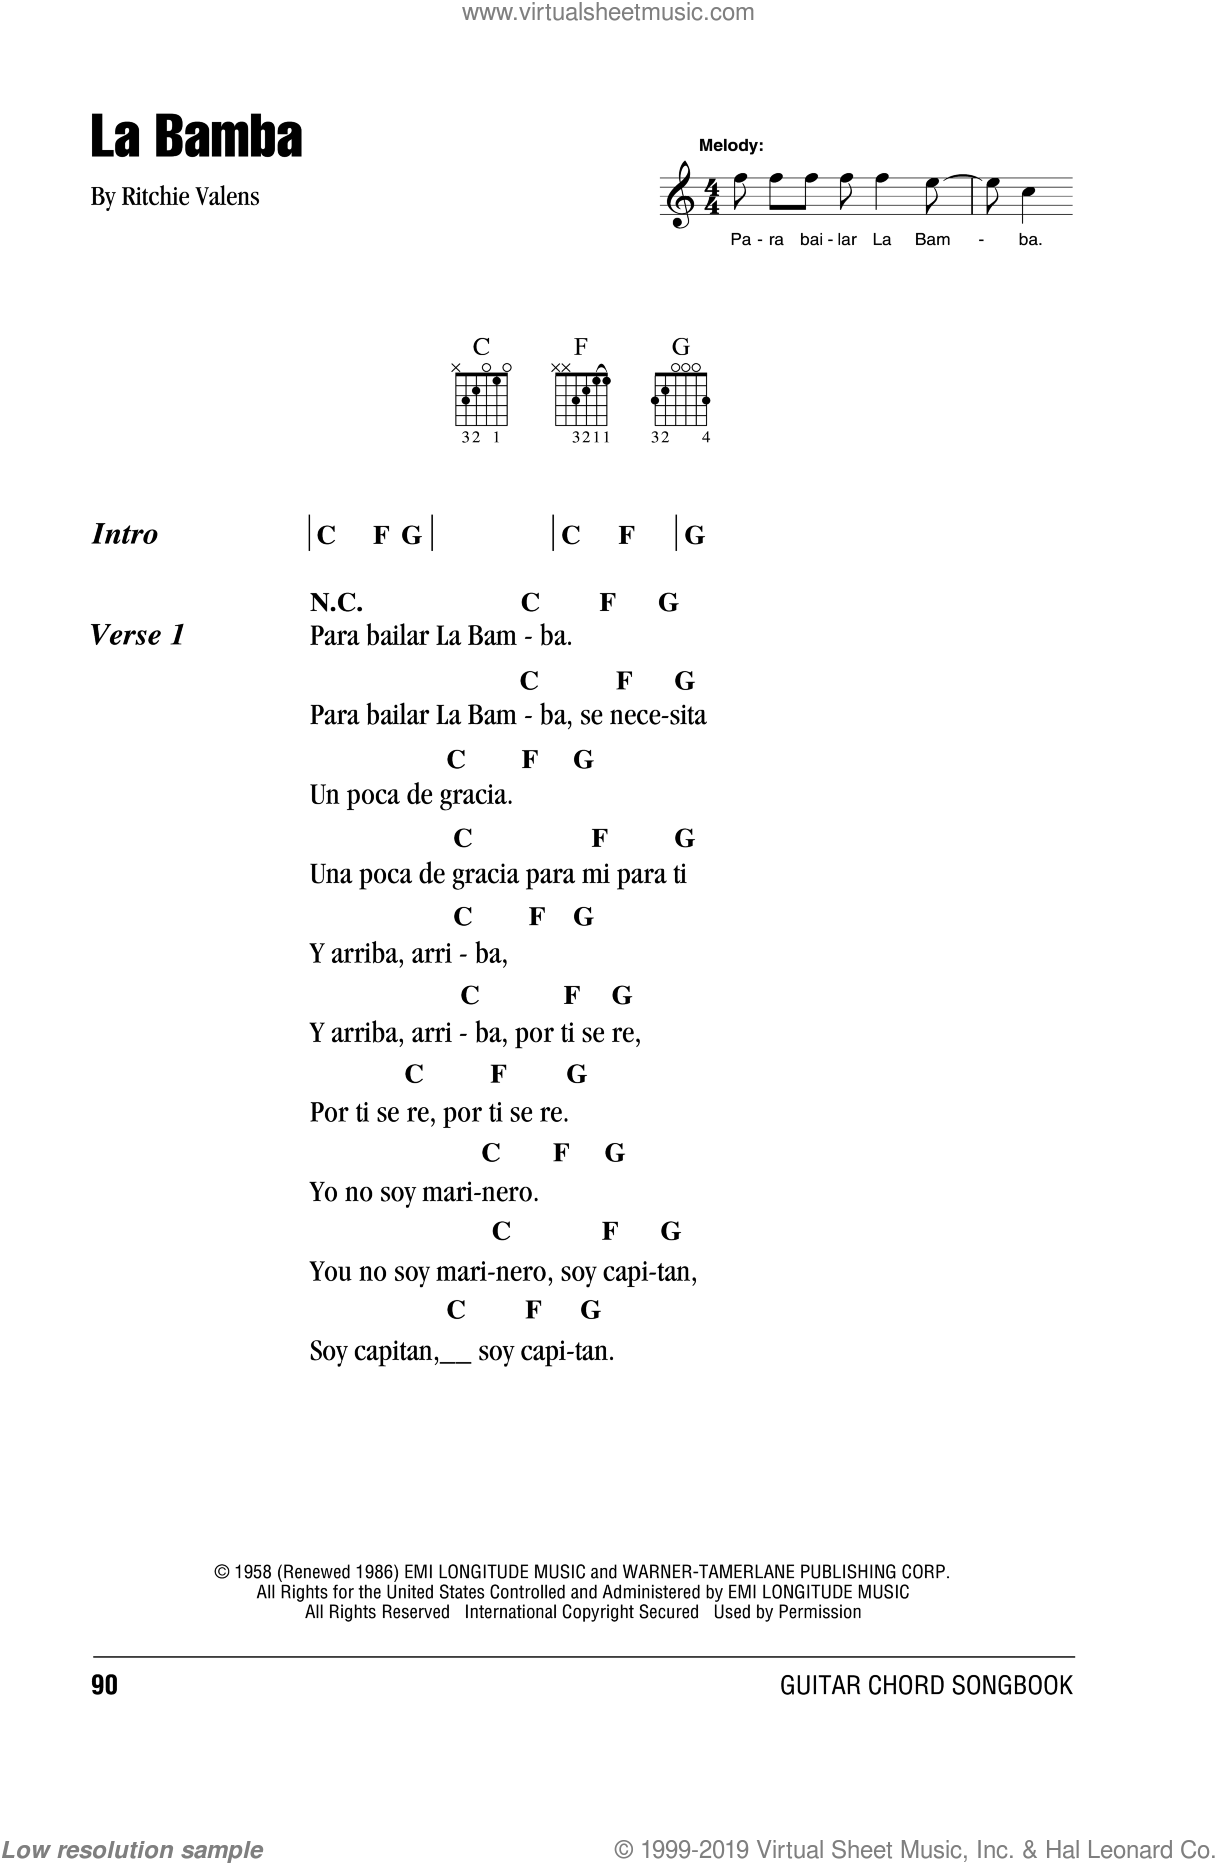 La Bamba sheet music for guitar (chords, lyrics, melody) by Ritchie Valens